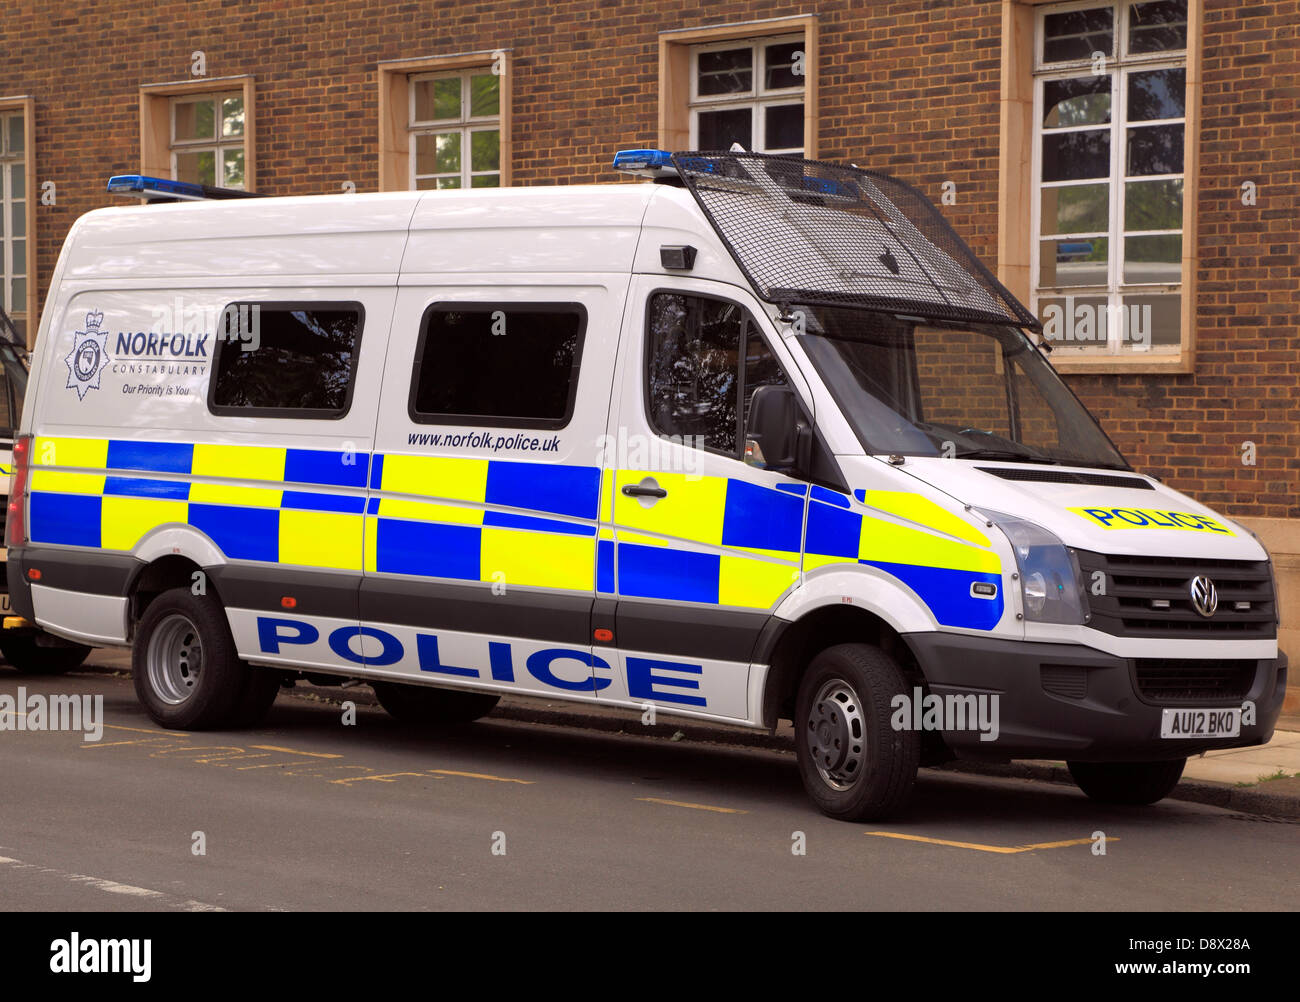 Norfolk Constabulary, Police van, vehicle, vehicles, England UK - Stock Image